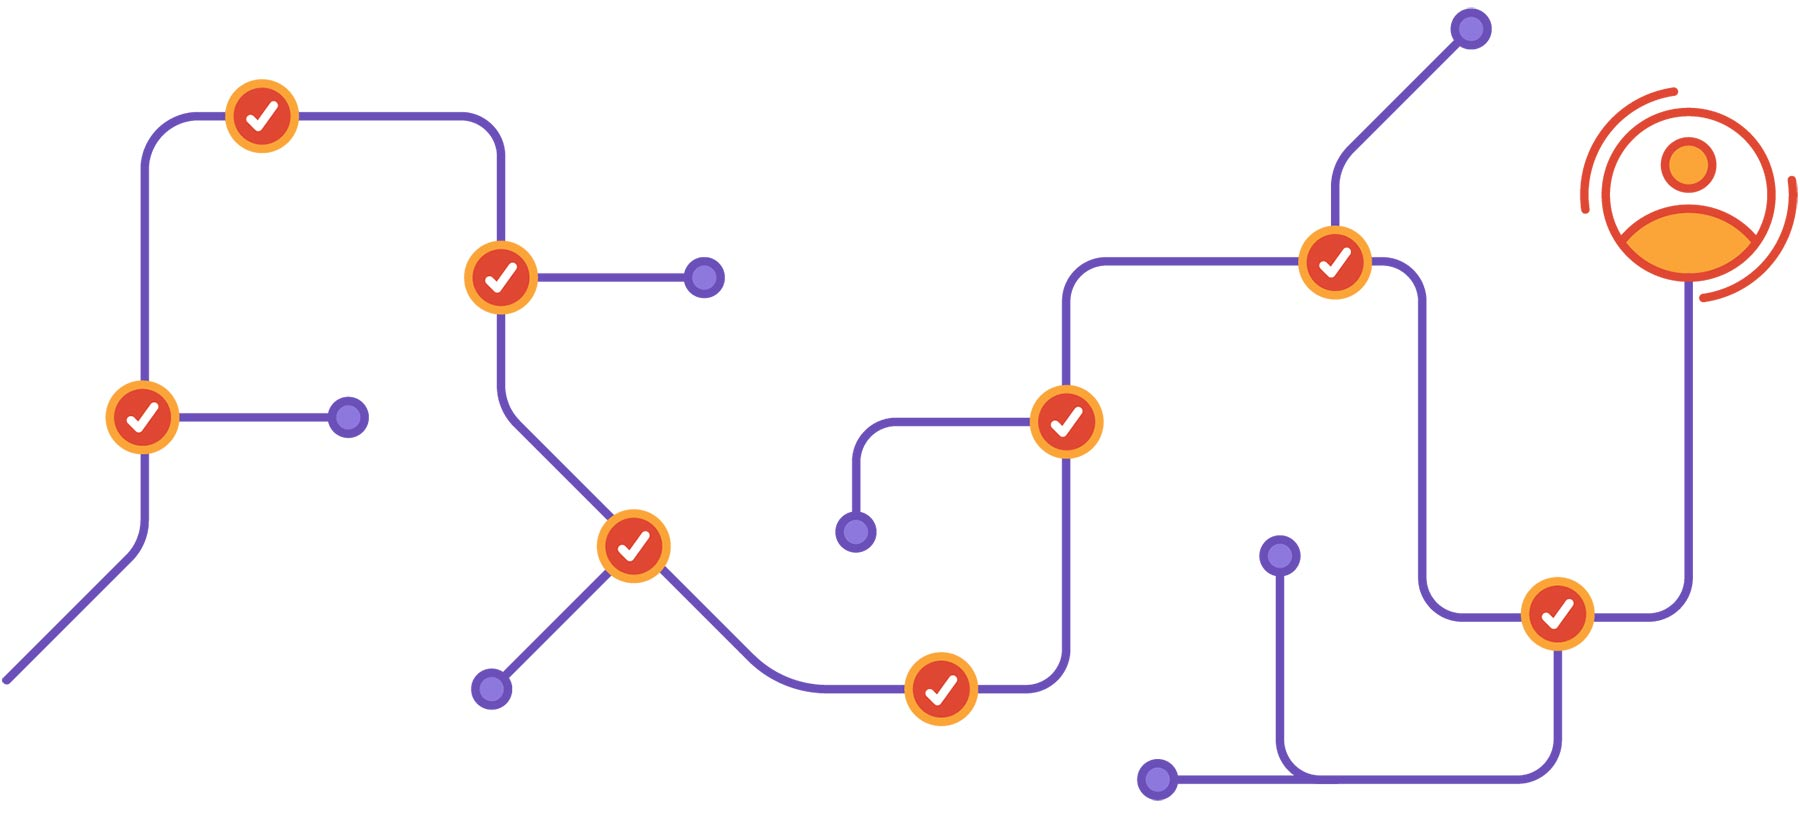 GitLab customer path illustration